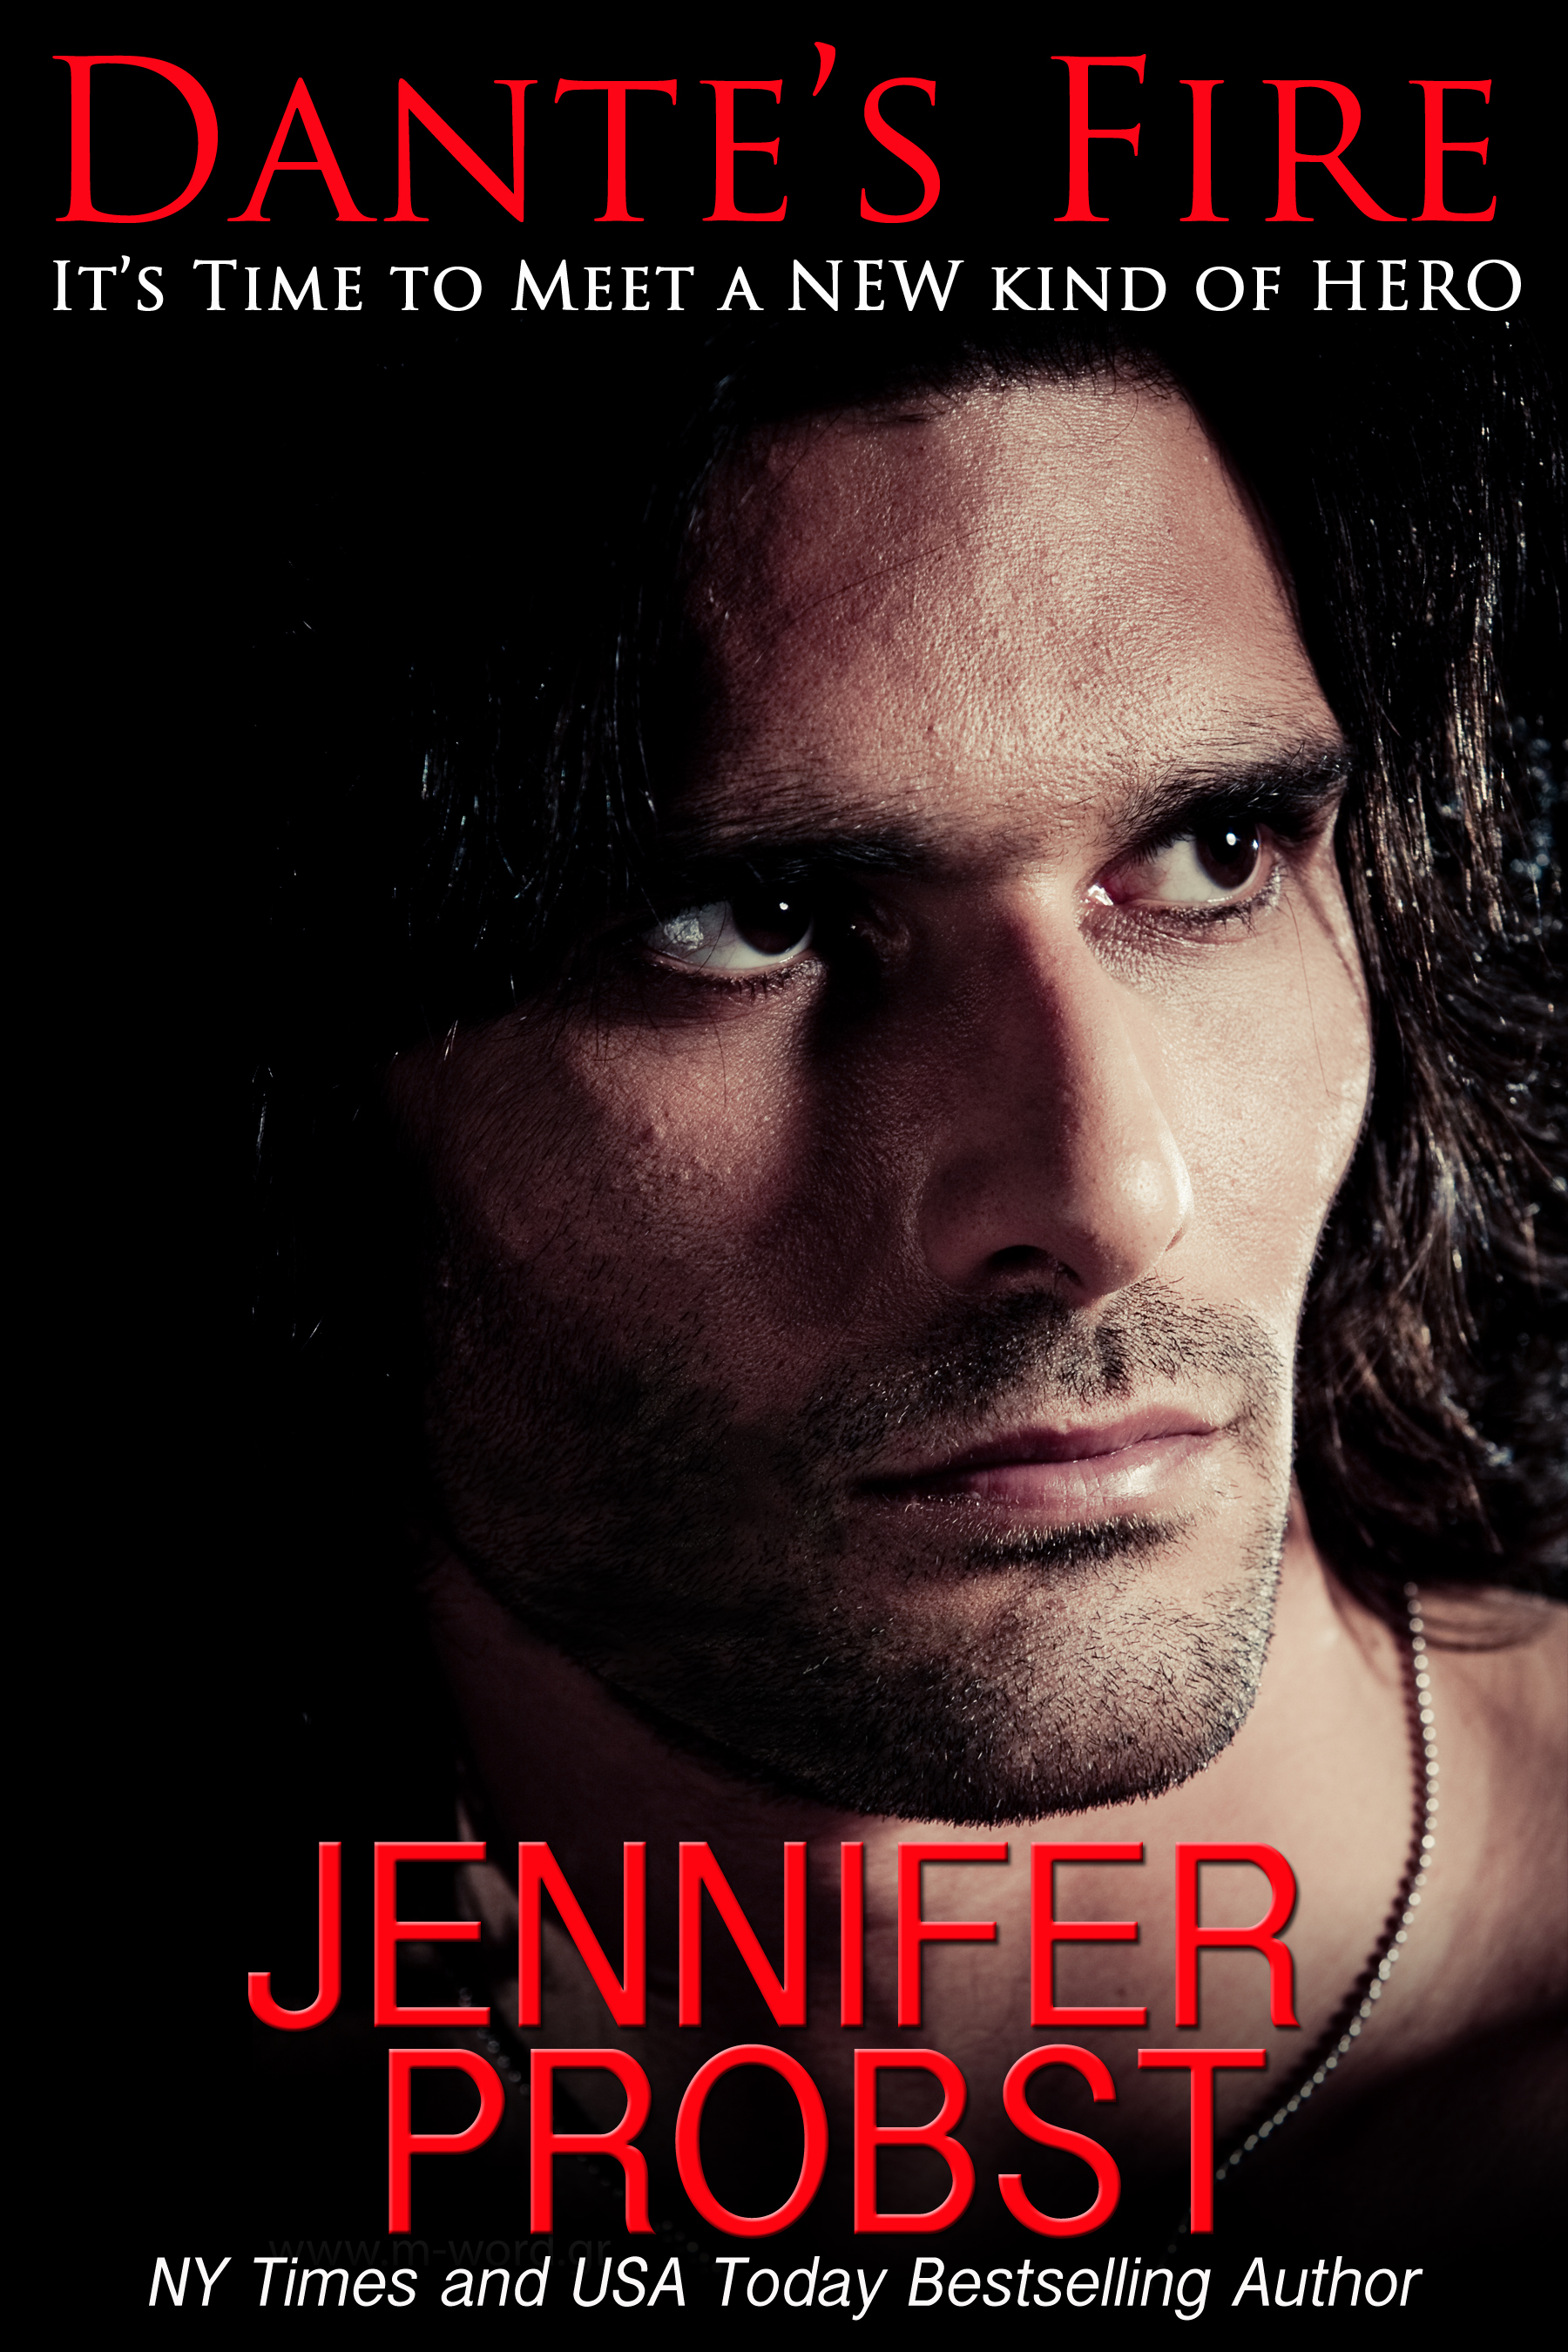 BLOG TOUR, GIVEAWAY & REVIEW: DANTE'S FIRE by Jennifer Probst